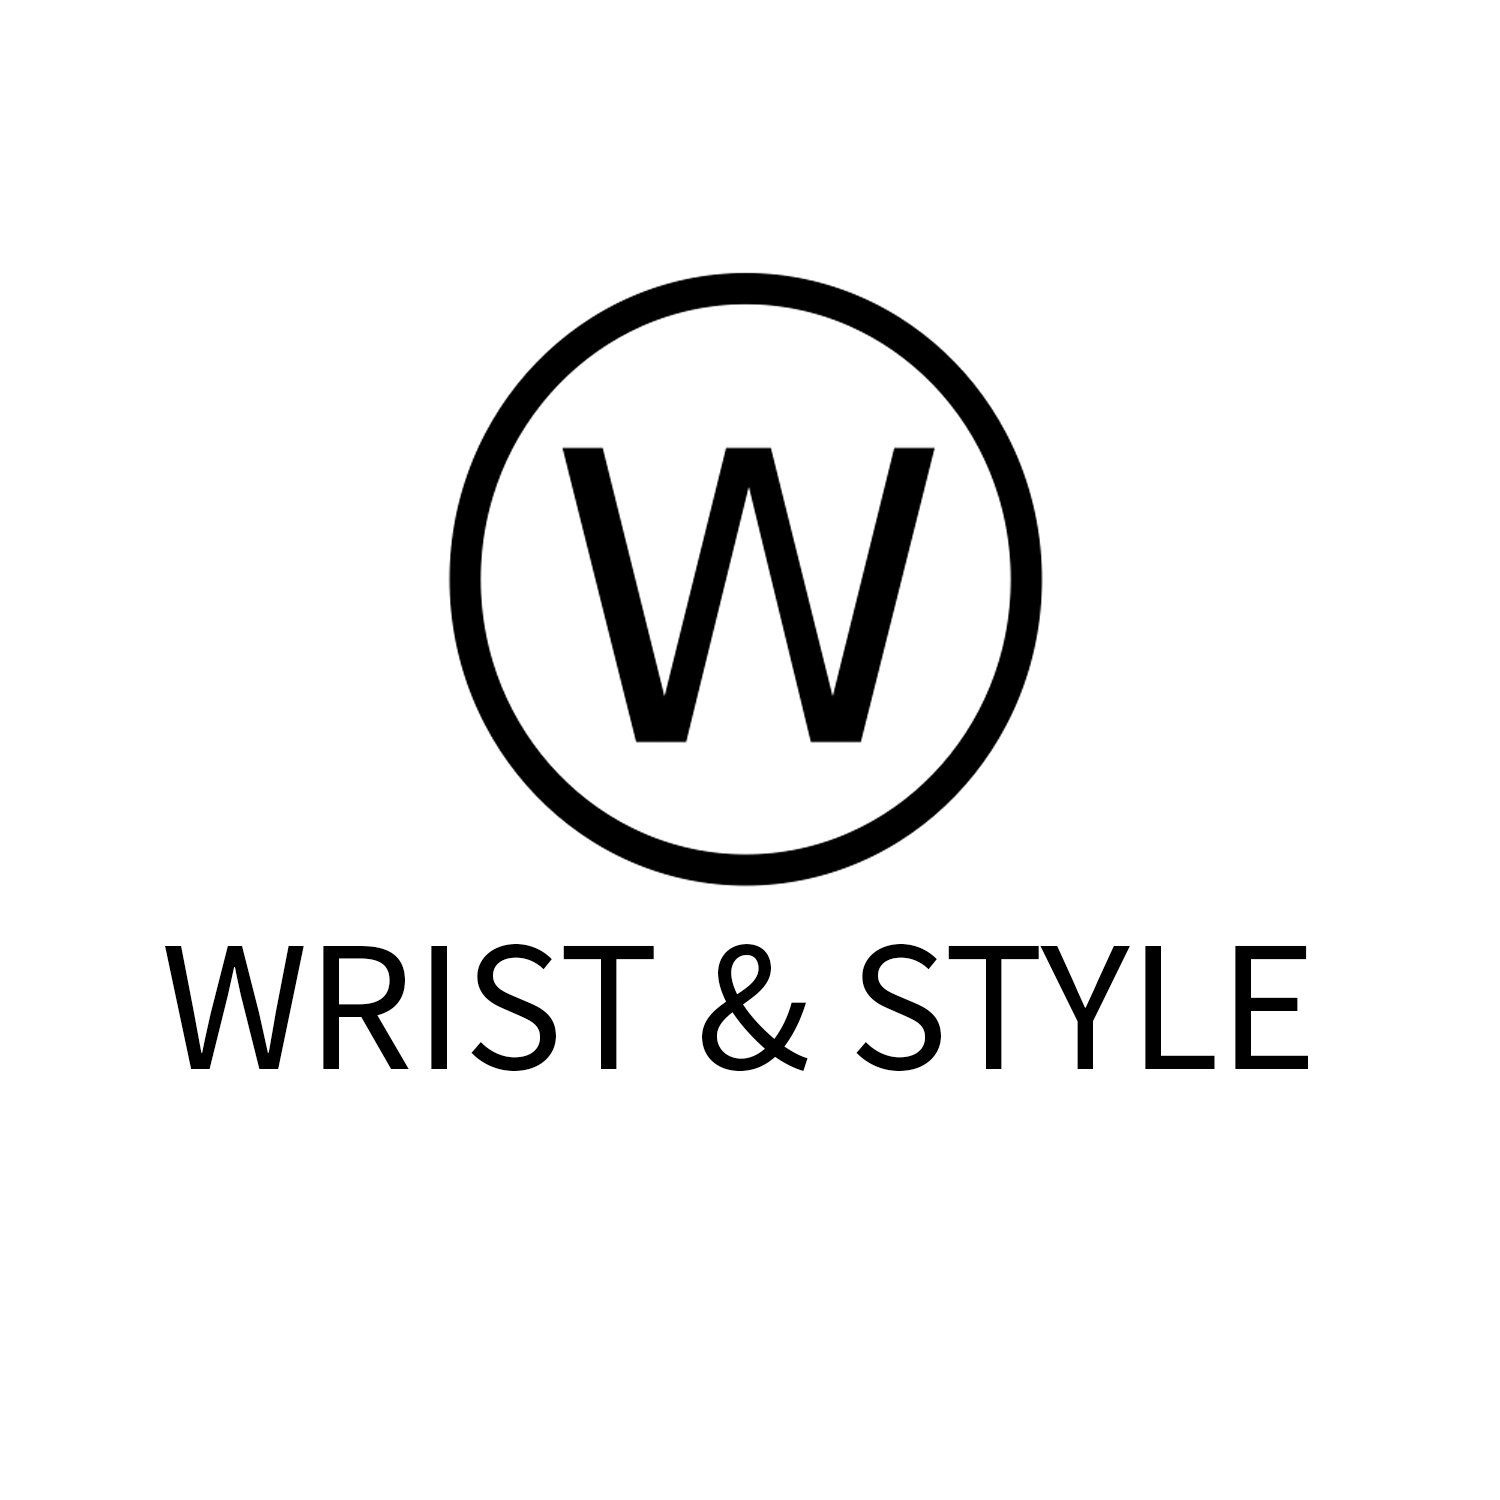 W&S Braided Woven Watch Strap Stretch Watch Band (20mm, Teal) by Wrist & Style (Image #2)